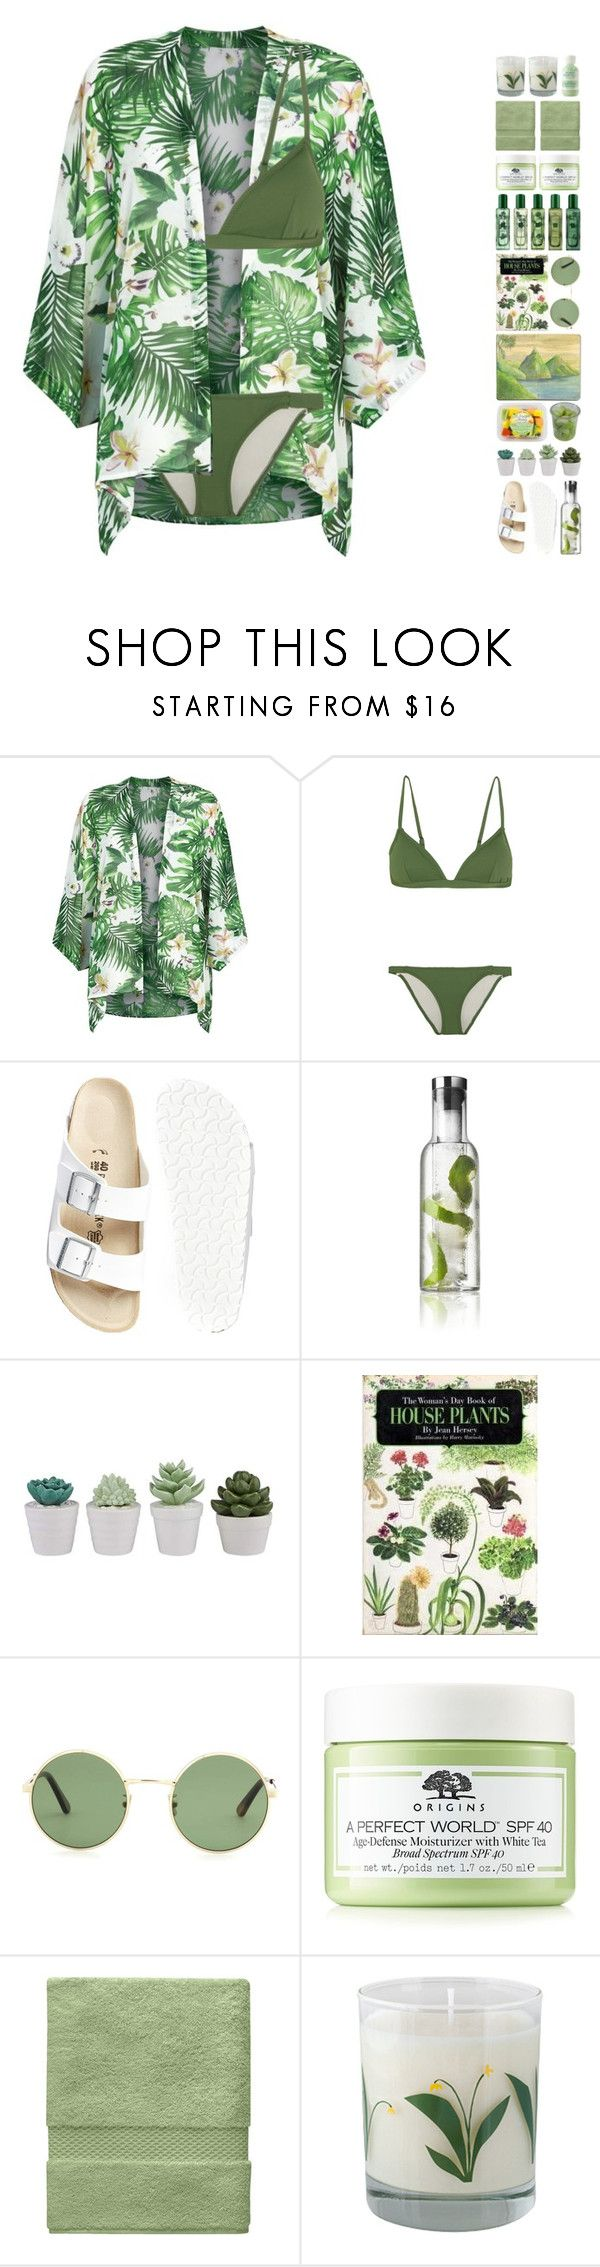 """6365"" by tiffanyelinor ❤ liked on Polyvore featuring Fashion Union, Eberjey, Birkenstock, Menu, Moleskine, Yves Saint Laurent, Jo Malone, Origins, Yves Delorme and Crash"